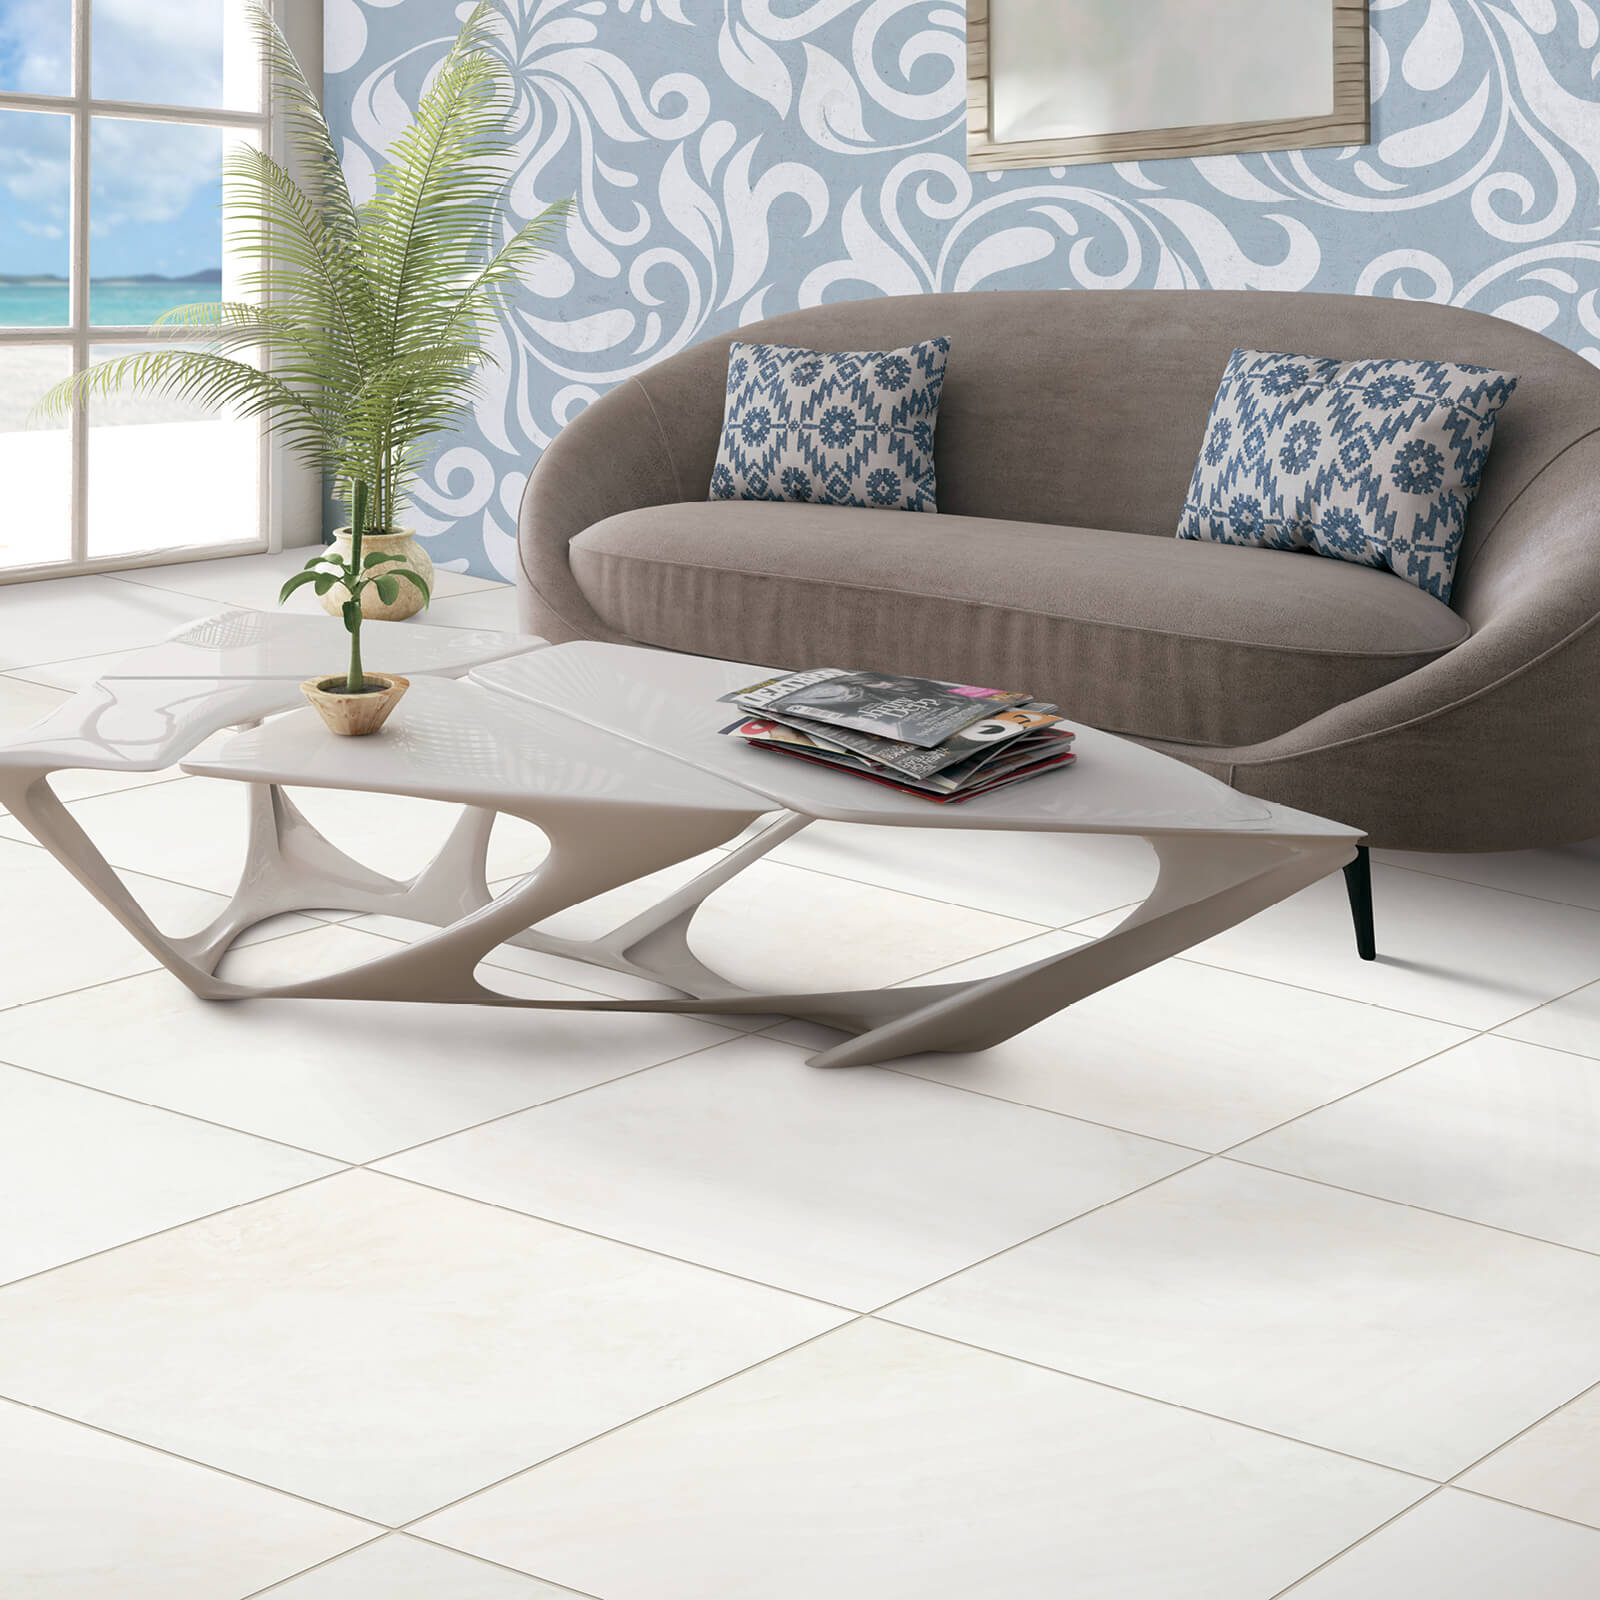 Tile in living room | Neils Floor Covering